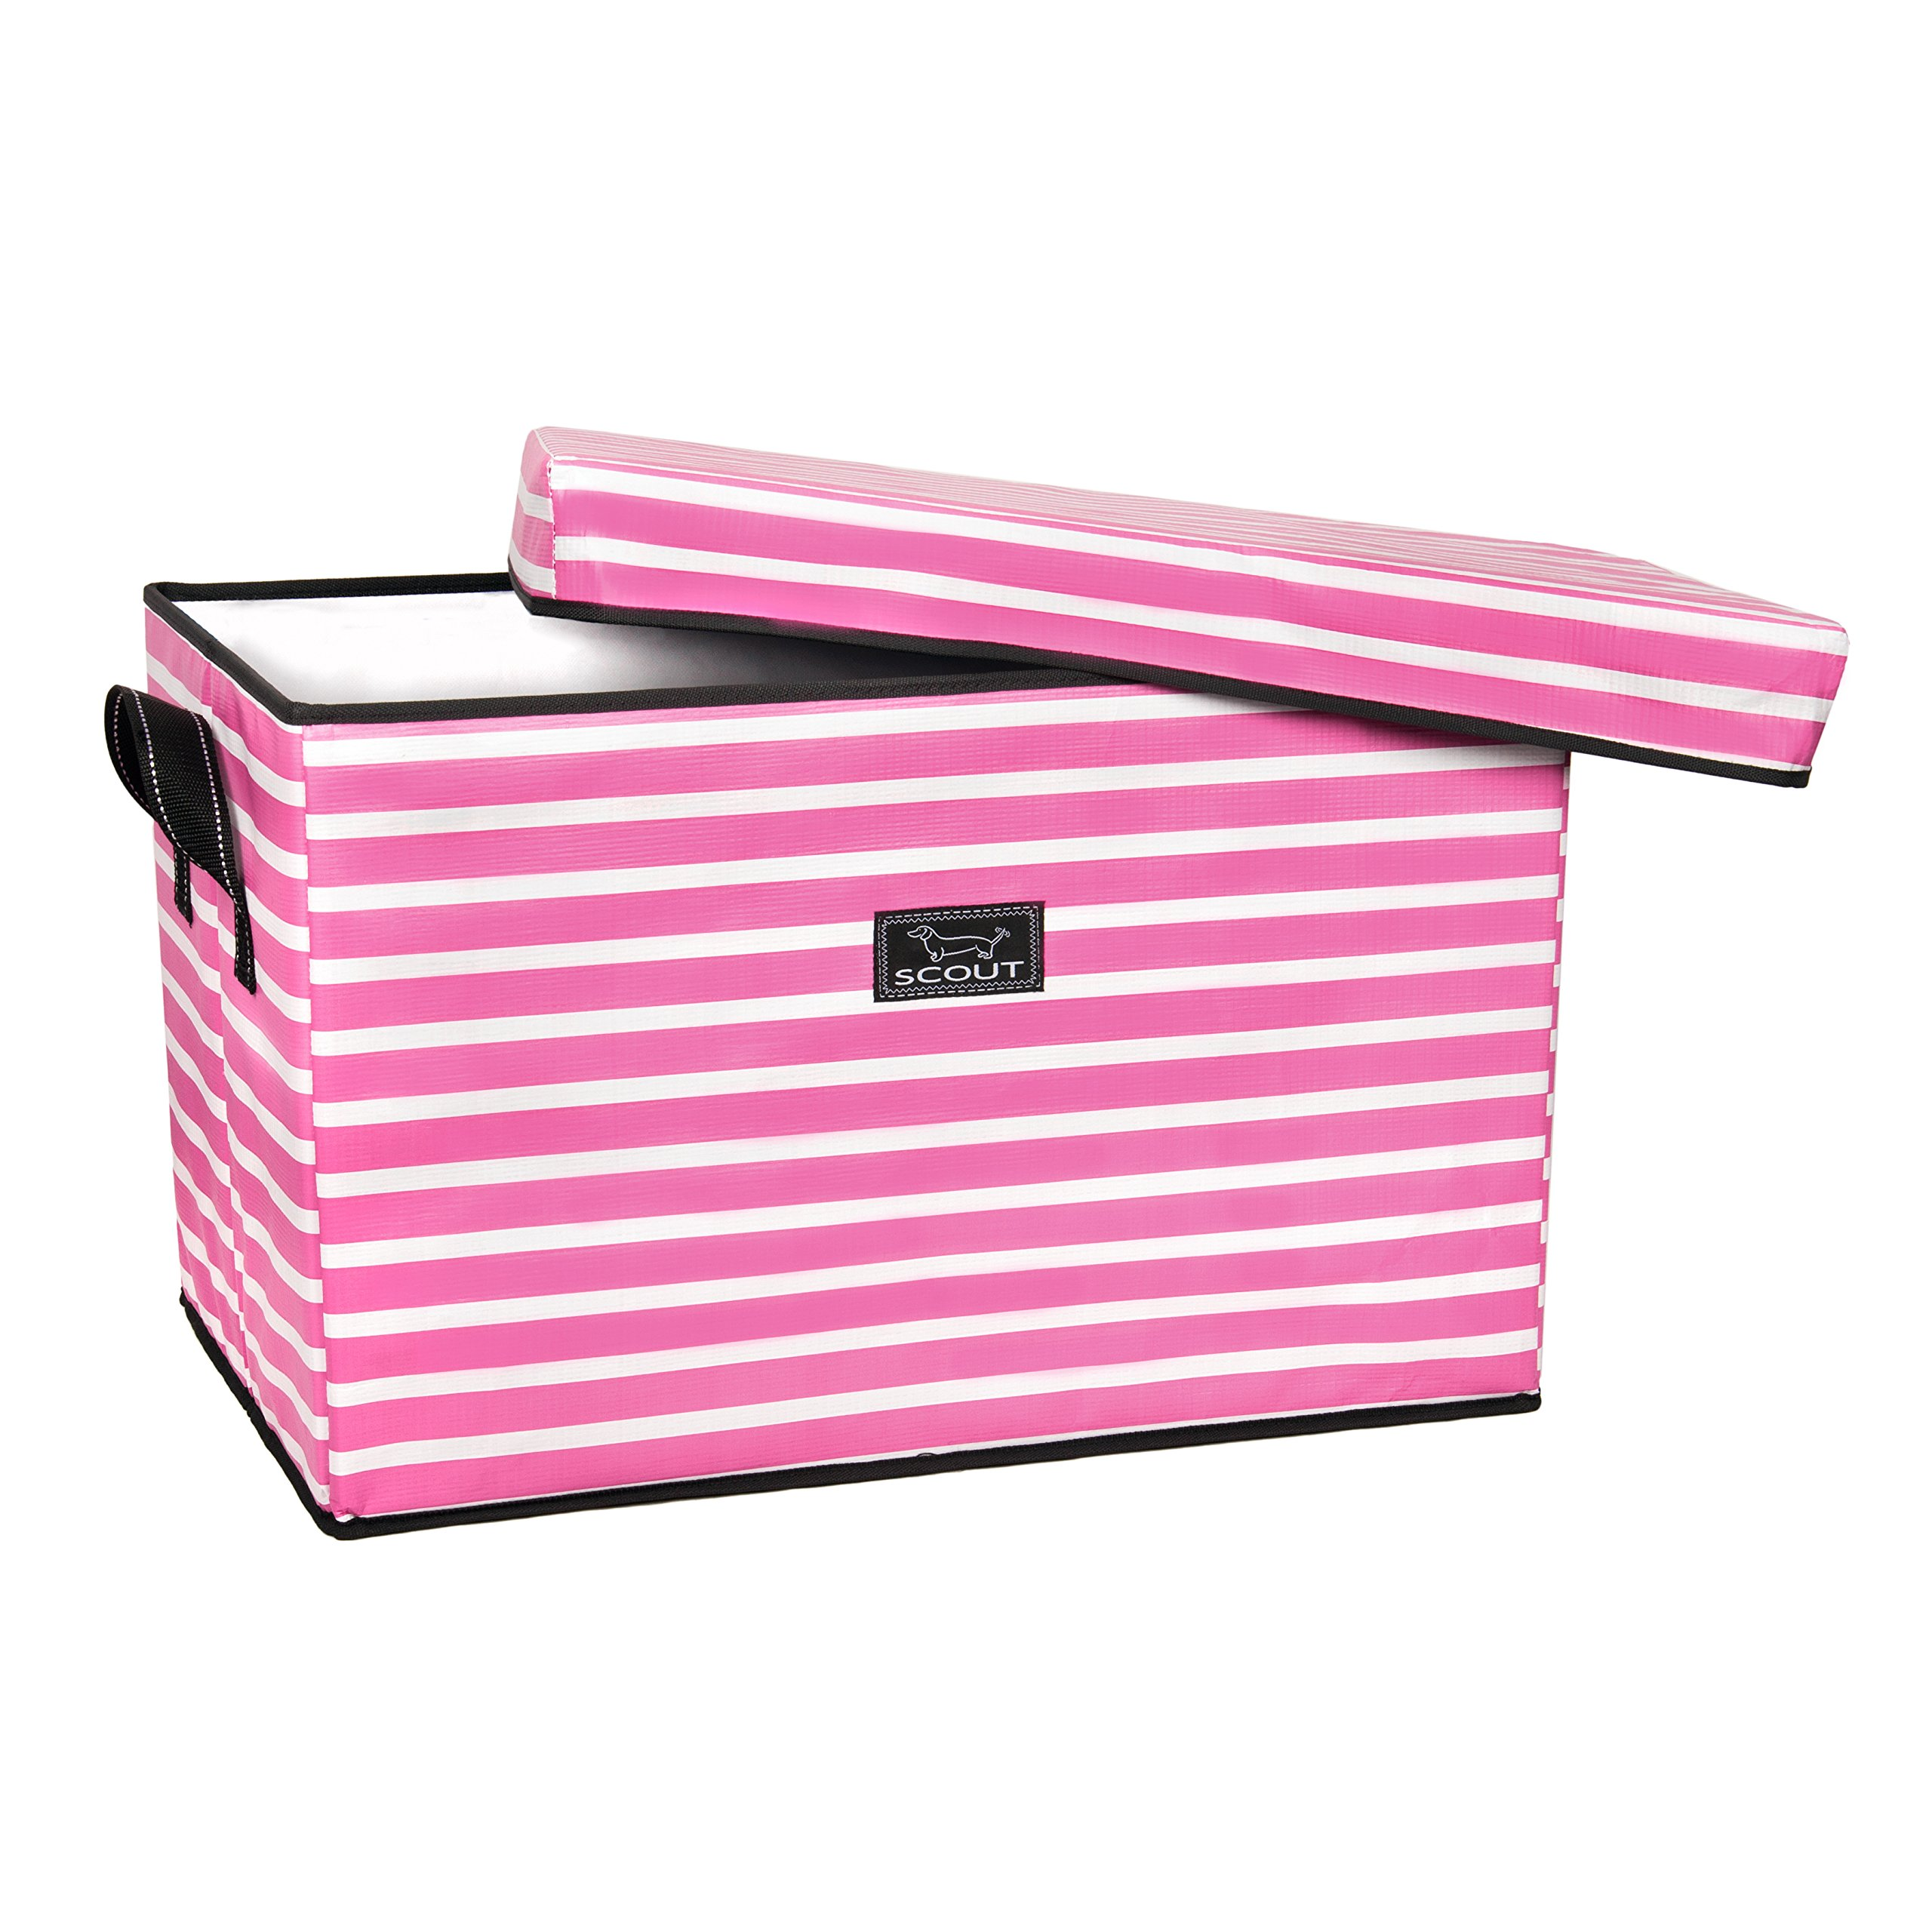 SCOUT Rump Roost Large Lidded Storage Bin, Collapsible and Stackable, Reinforced Side Handles and Bottom, Water Resistant, Panama Pink